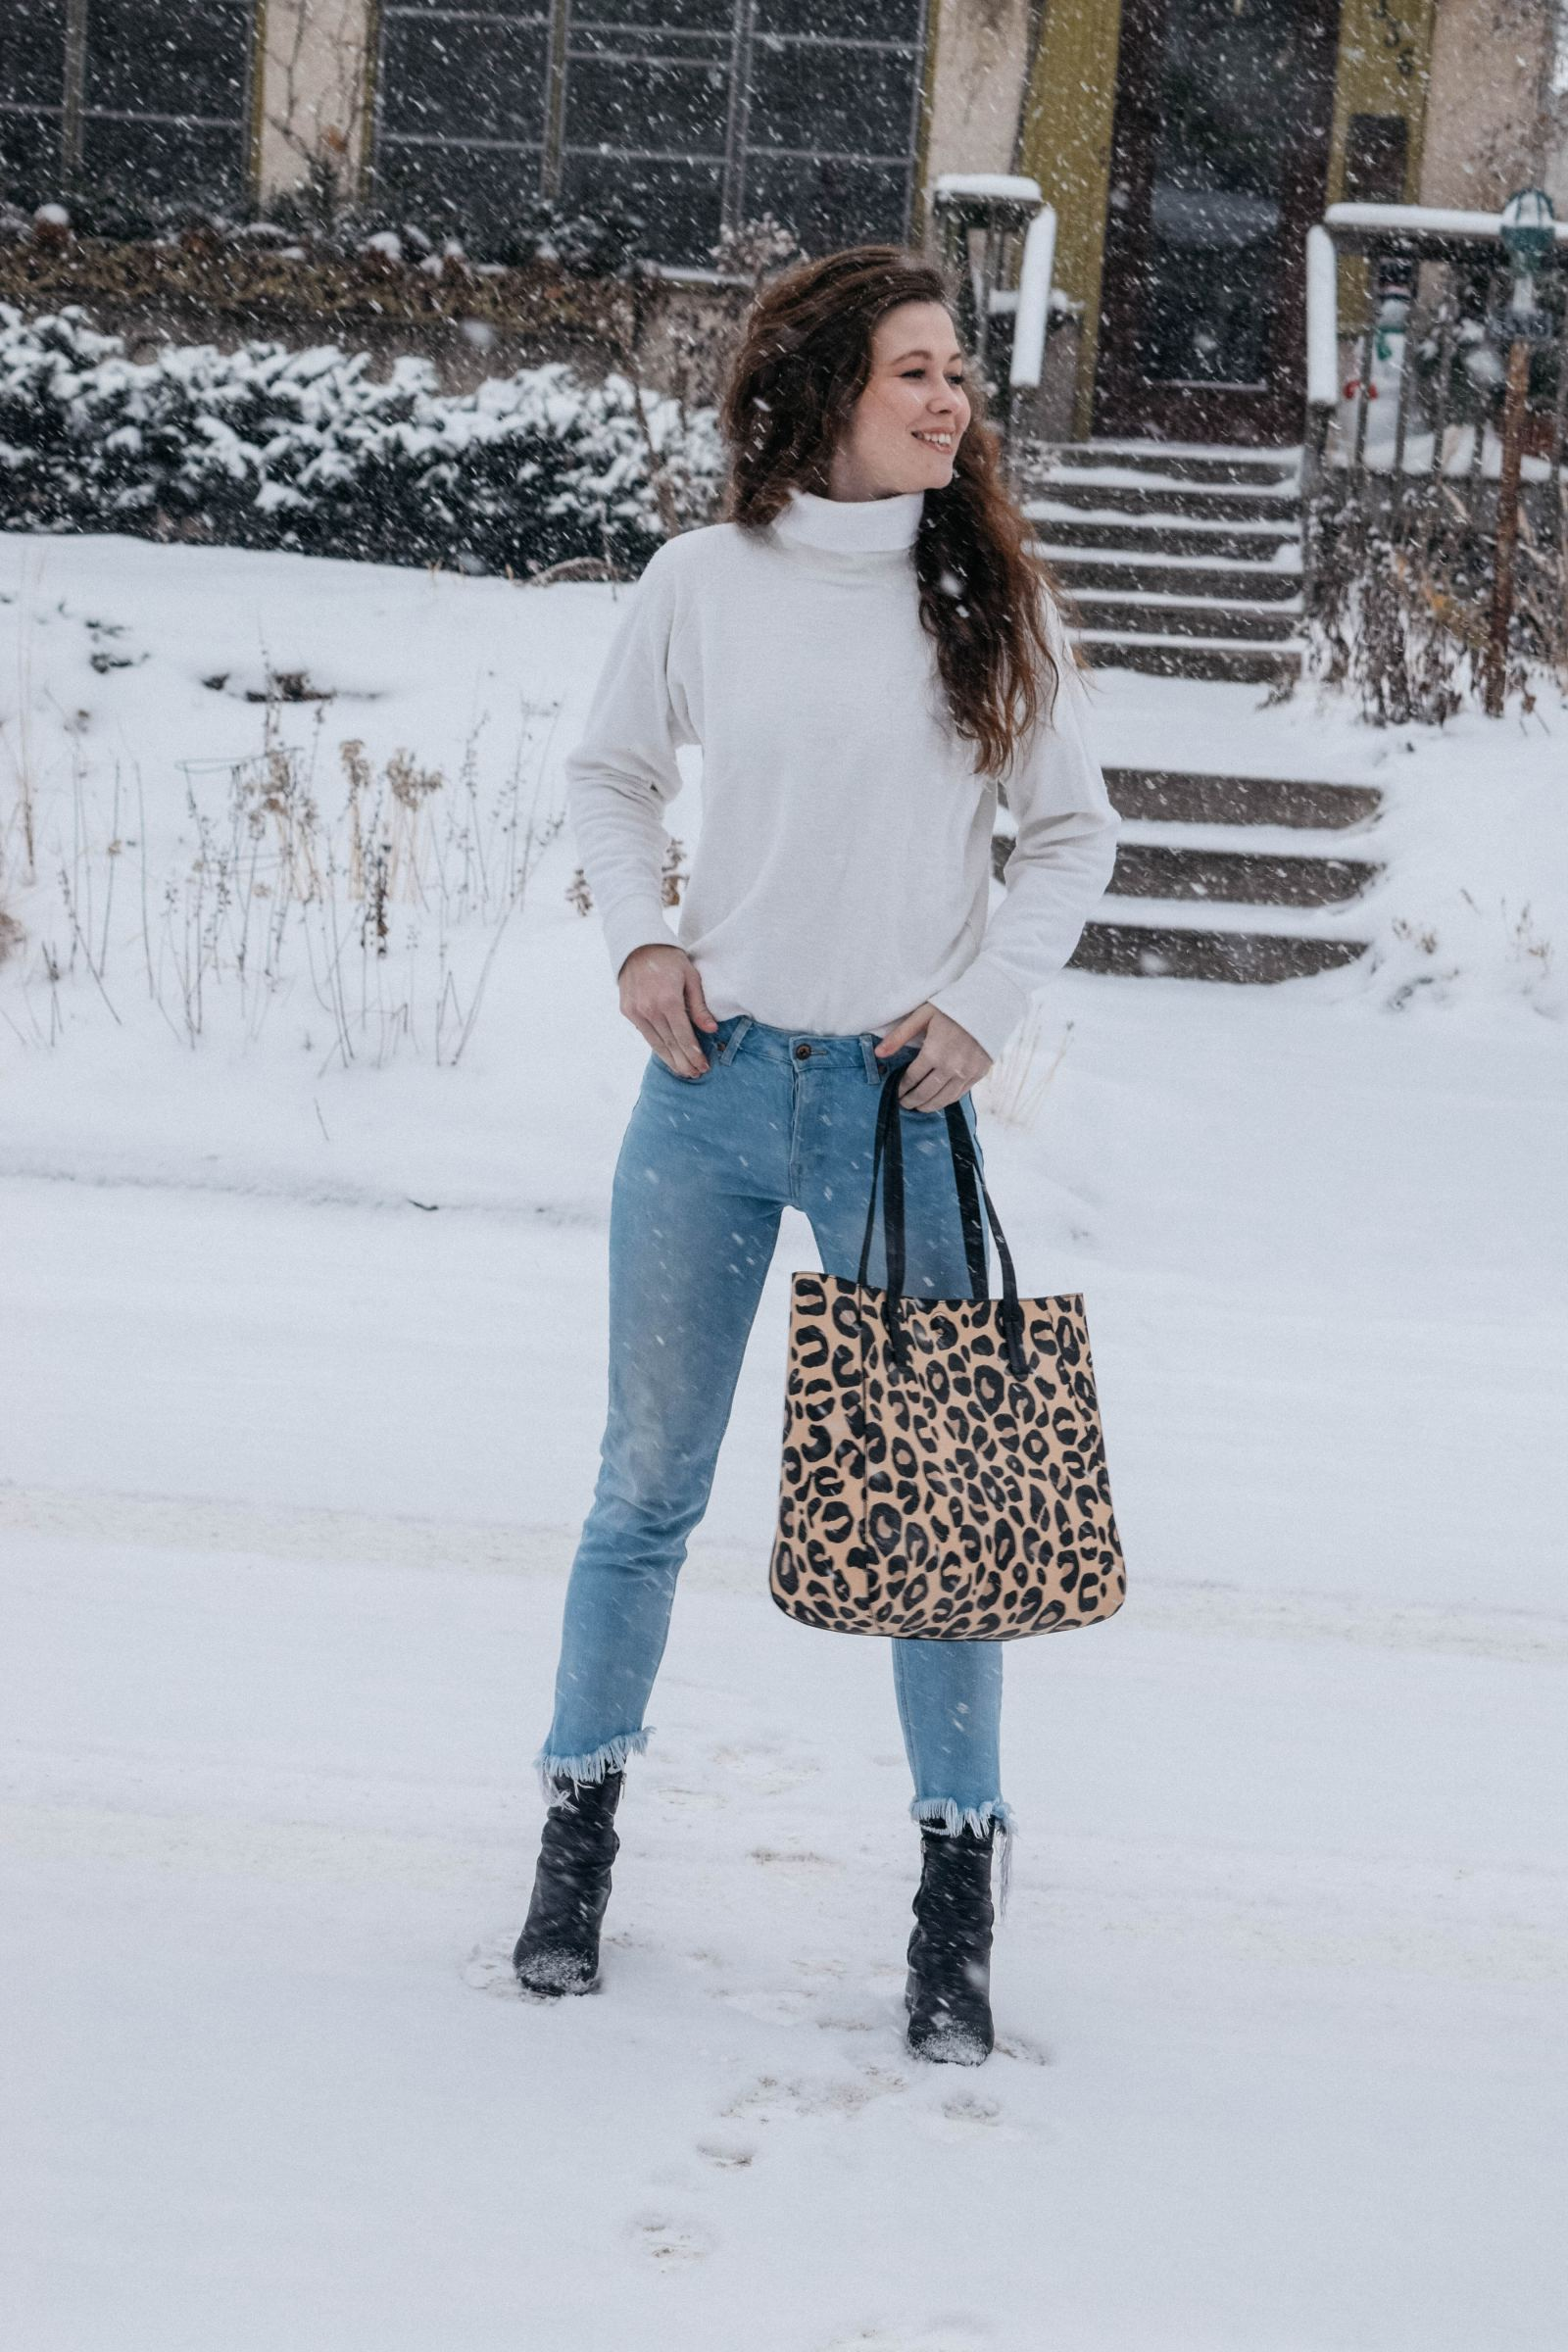 How to style a statement handbag?